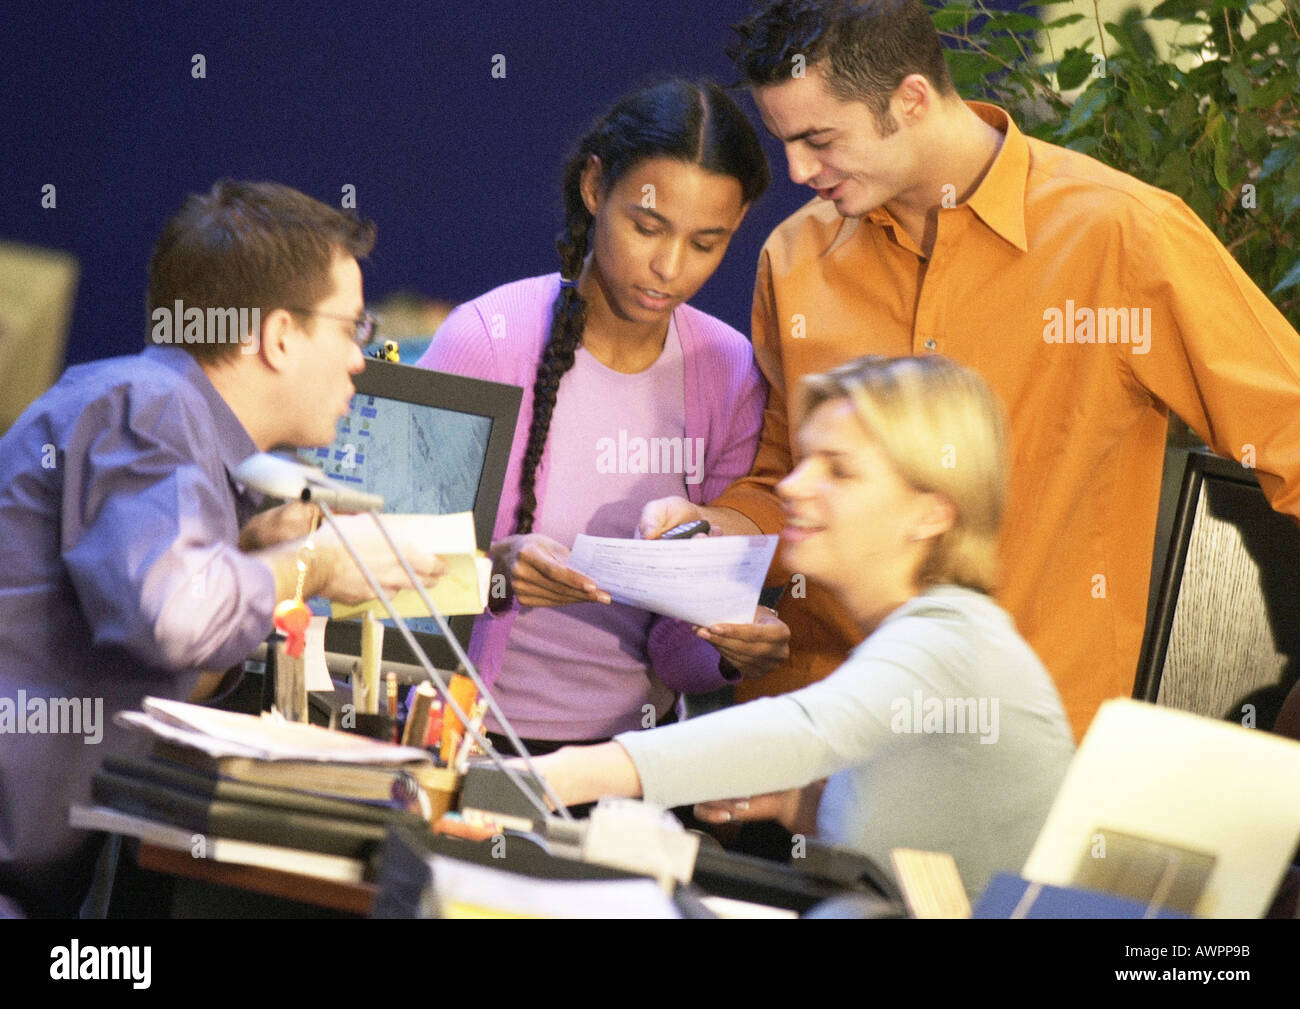 Four people interacting in office, close-up - Stock Image